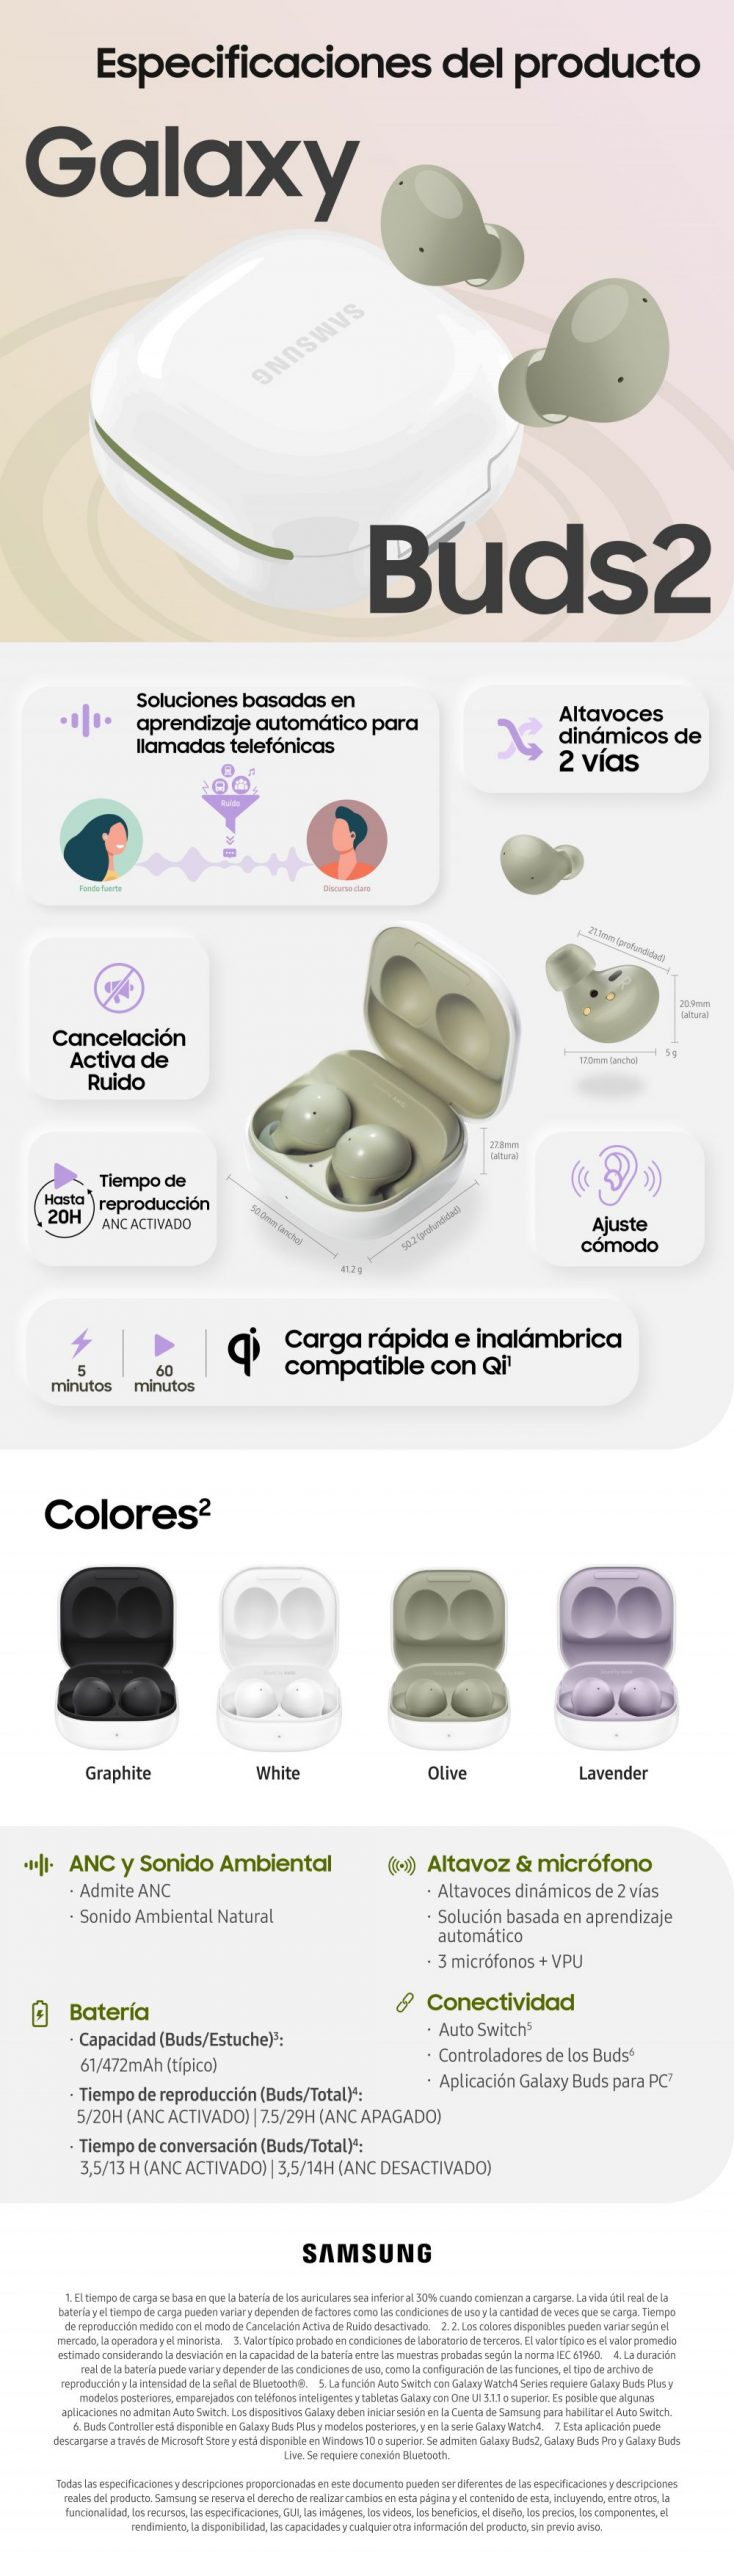 [Infographic] Galaxy Buds2 Immerse Yourself in Deep, Rich Audio ES